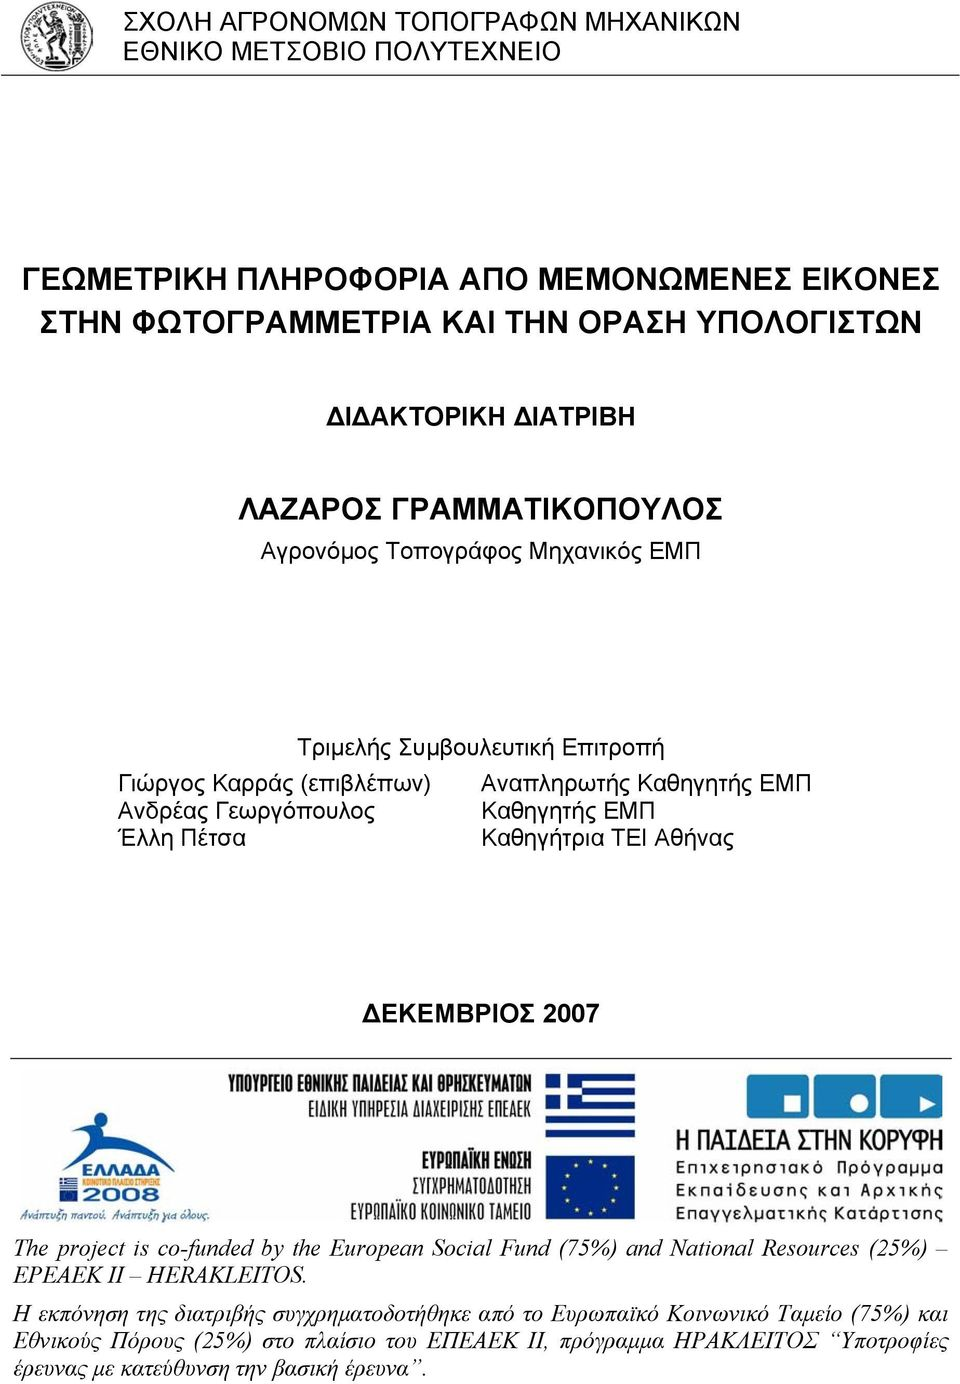 Έλλη Πέτσα Καθηγήτρια ΤΕΙ Αθήνας ΕΚΕΜΒΡΙΟΣ 2007 The project is co-funded by the European Social Fund (75%) and National Resources (25%) EPEAEK II HERAKLEITOS.